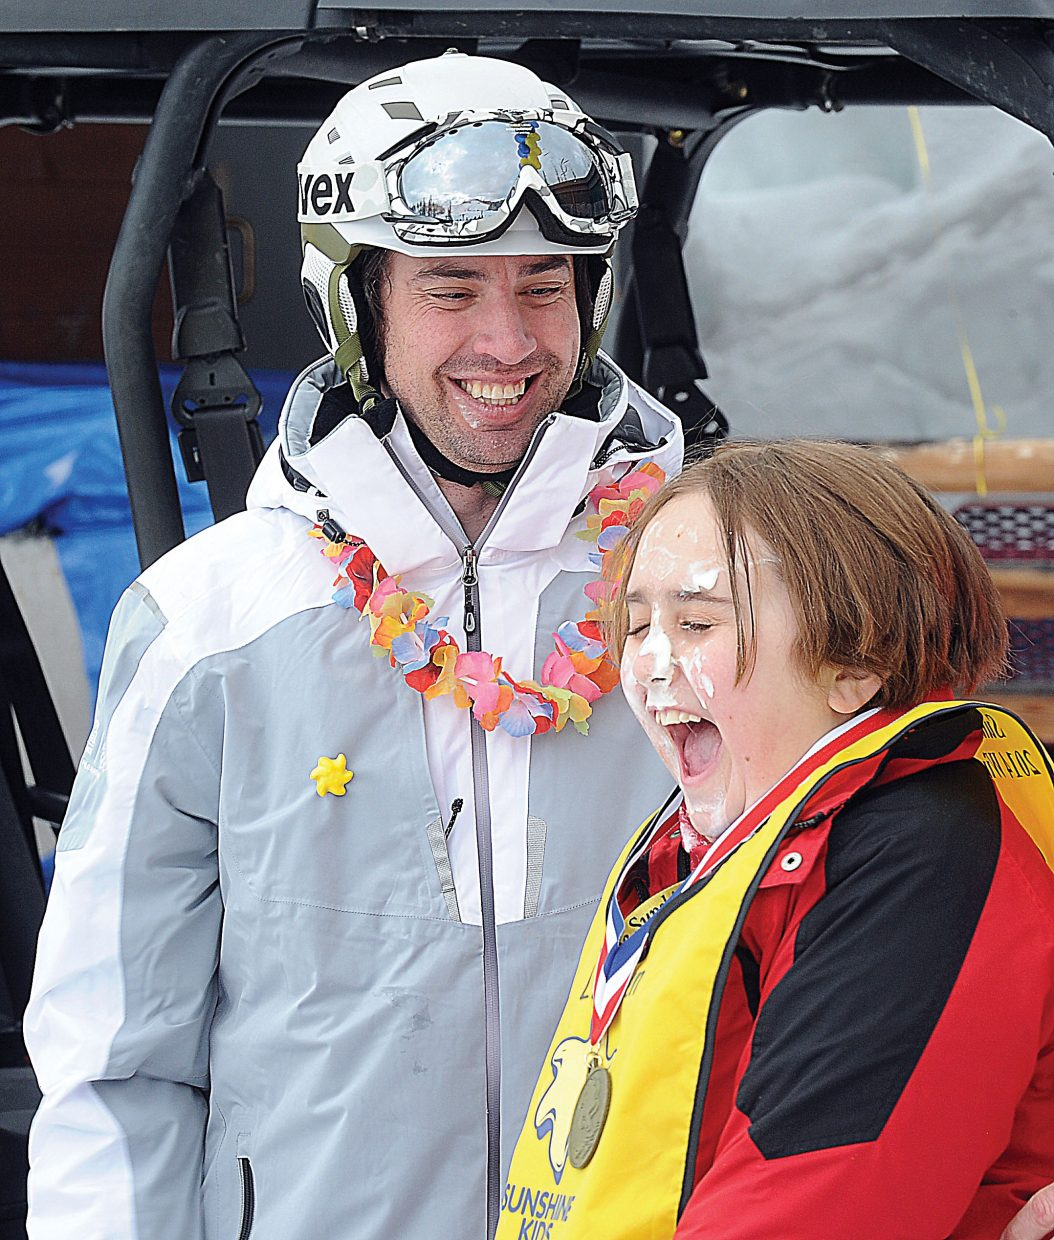 Lauren Rae Shock reacts after getting a peck on the cheek from Olympic silver medalist Johnny Spillane at the Sunshine Kids Winter Games at the base of the Bashor ski run at Steamboat Ski Area. Shock's new friends had surprised her with a face of whipped cream as she headed to the awards stand, and Spillane couldn't pass up an opportunity to make the young girls day.